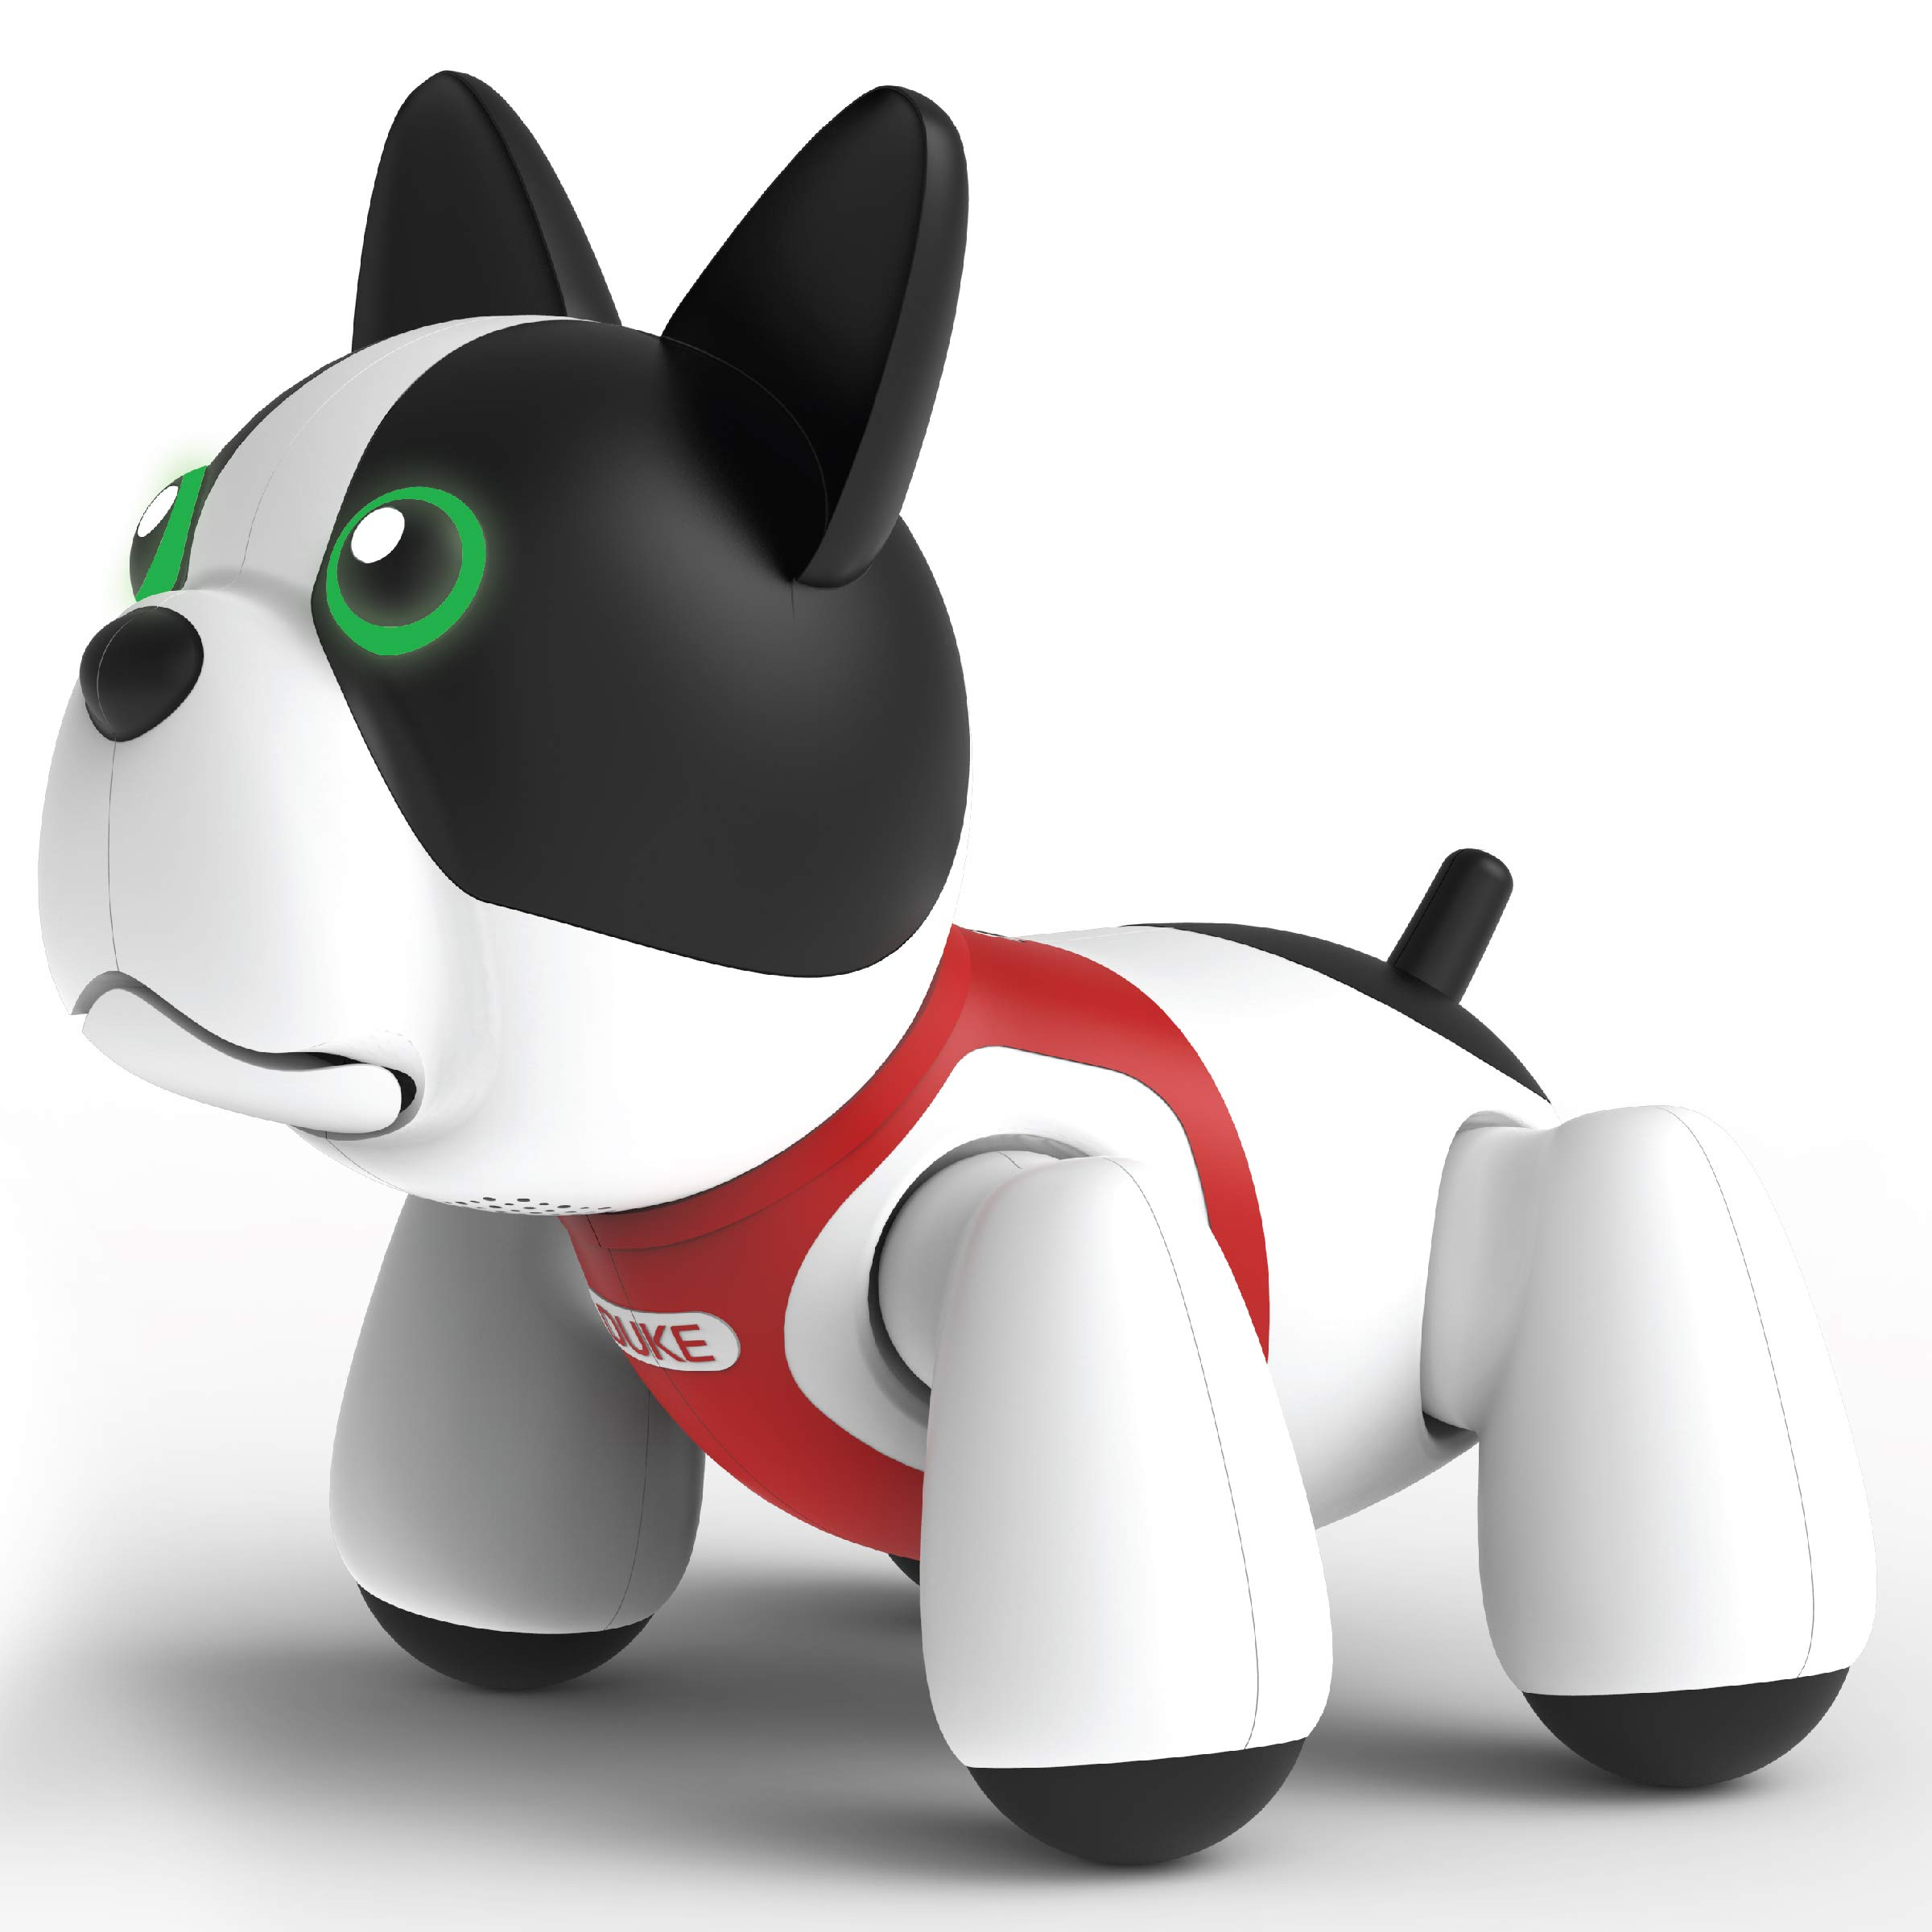 SHARPER IMAGE RC Toy Duke The Trainable Robotic Puppy Dog with Smart Bone, Virtual Robot Pet for Kids, Barks and Plays Tricks on Command, Responds to Touch and Voice by Sharper Image (Image #1)